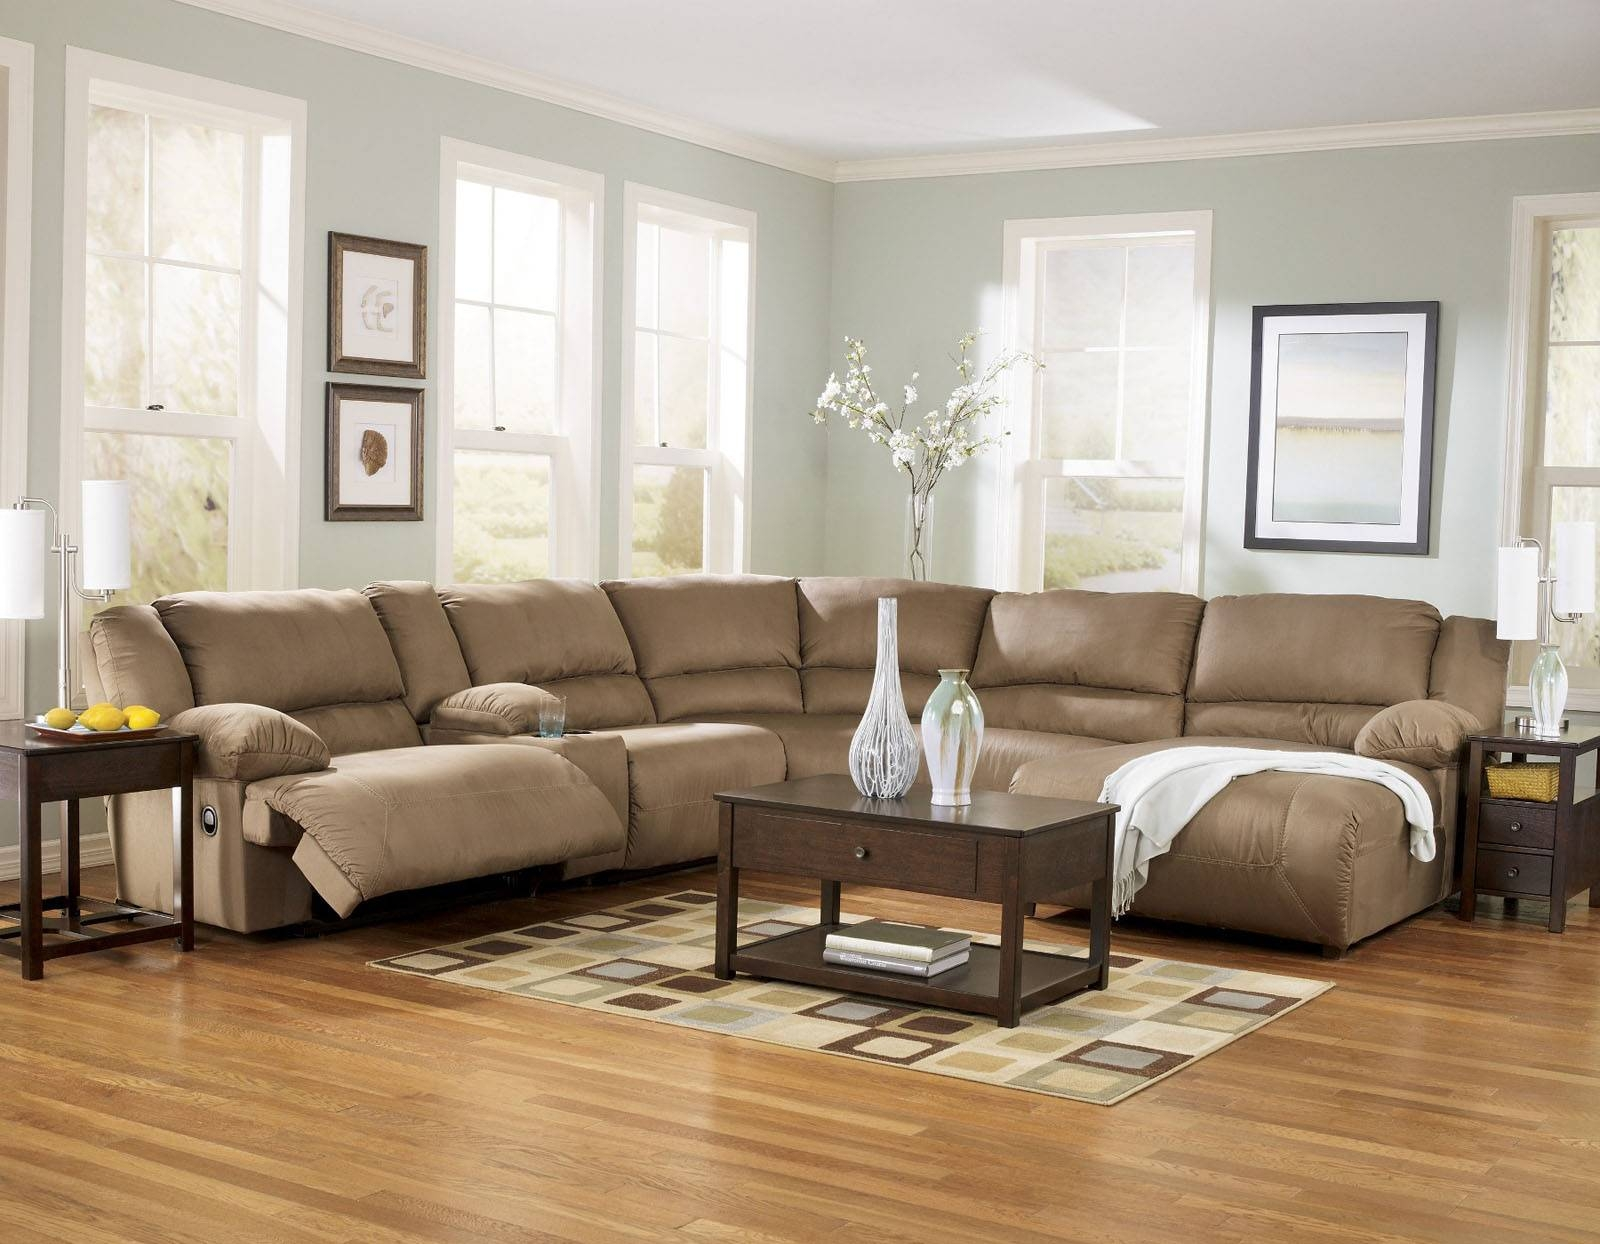 The Most Popular Fabric Sectional Sofa With Recliner 69 For Your throughout Closeout Sectional Sofas (Image 27 of 30)